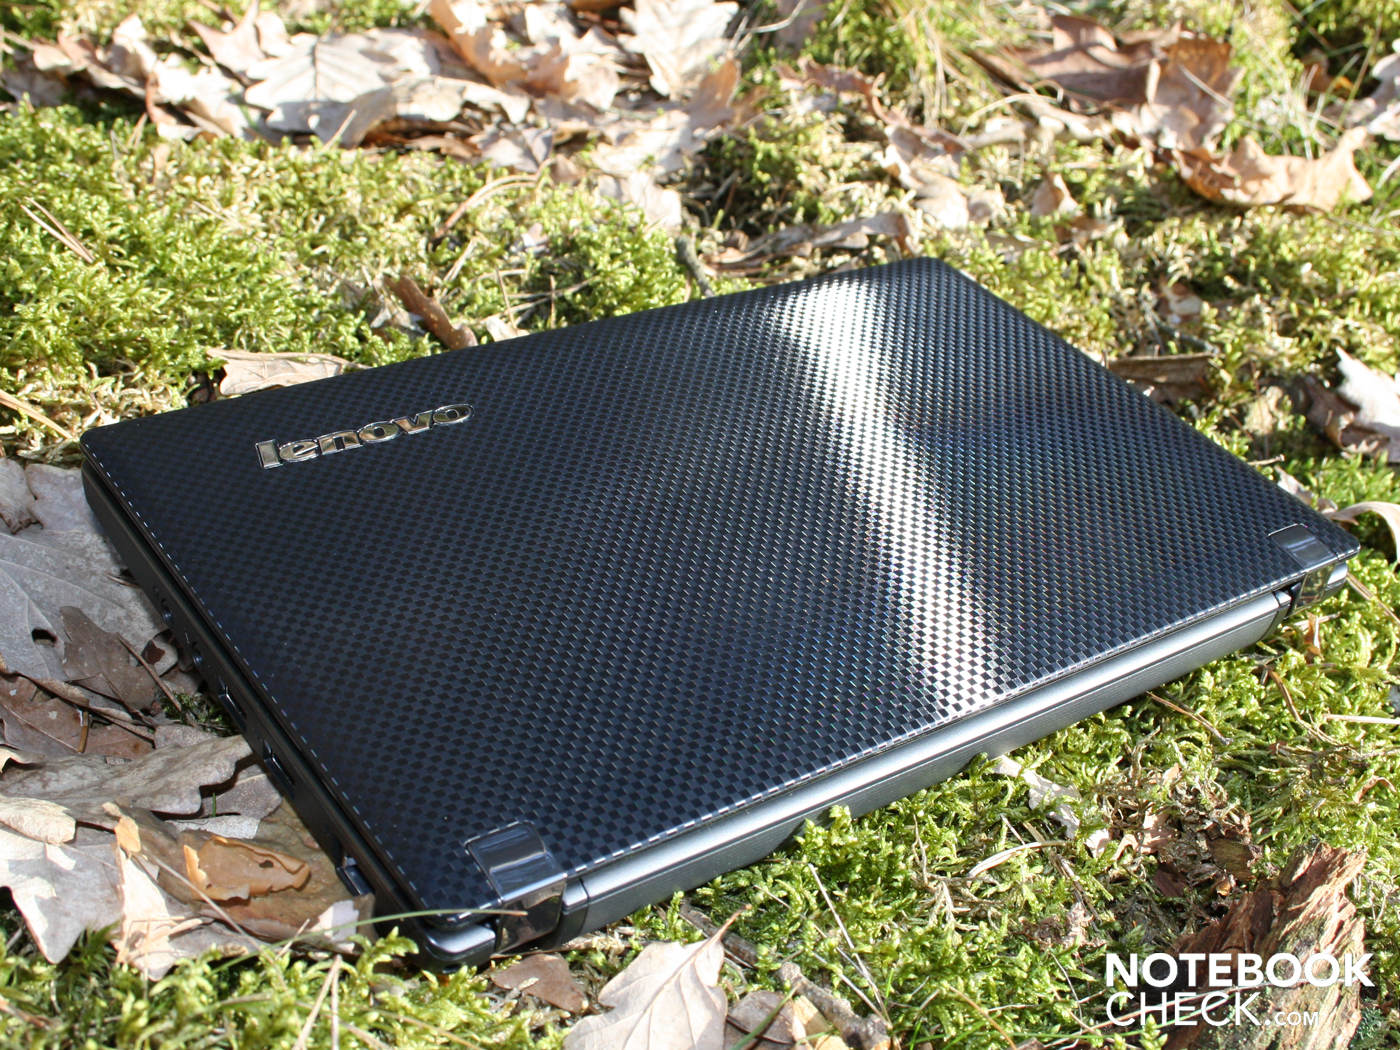 weakness of lenovo The lenovo flex 5 is a great laptop that you can use for a well-rounded machine with some typical weaknesses the mission of techaeris is to offer honest.